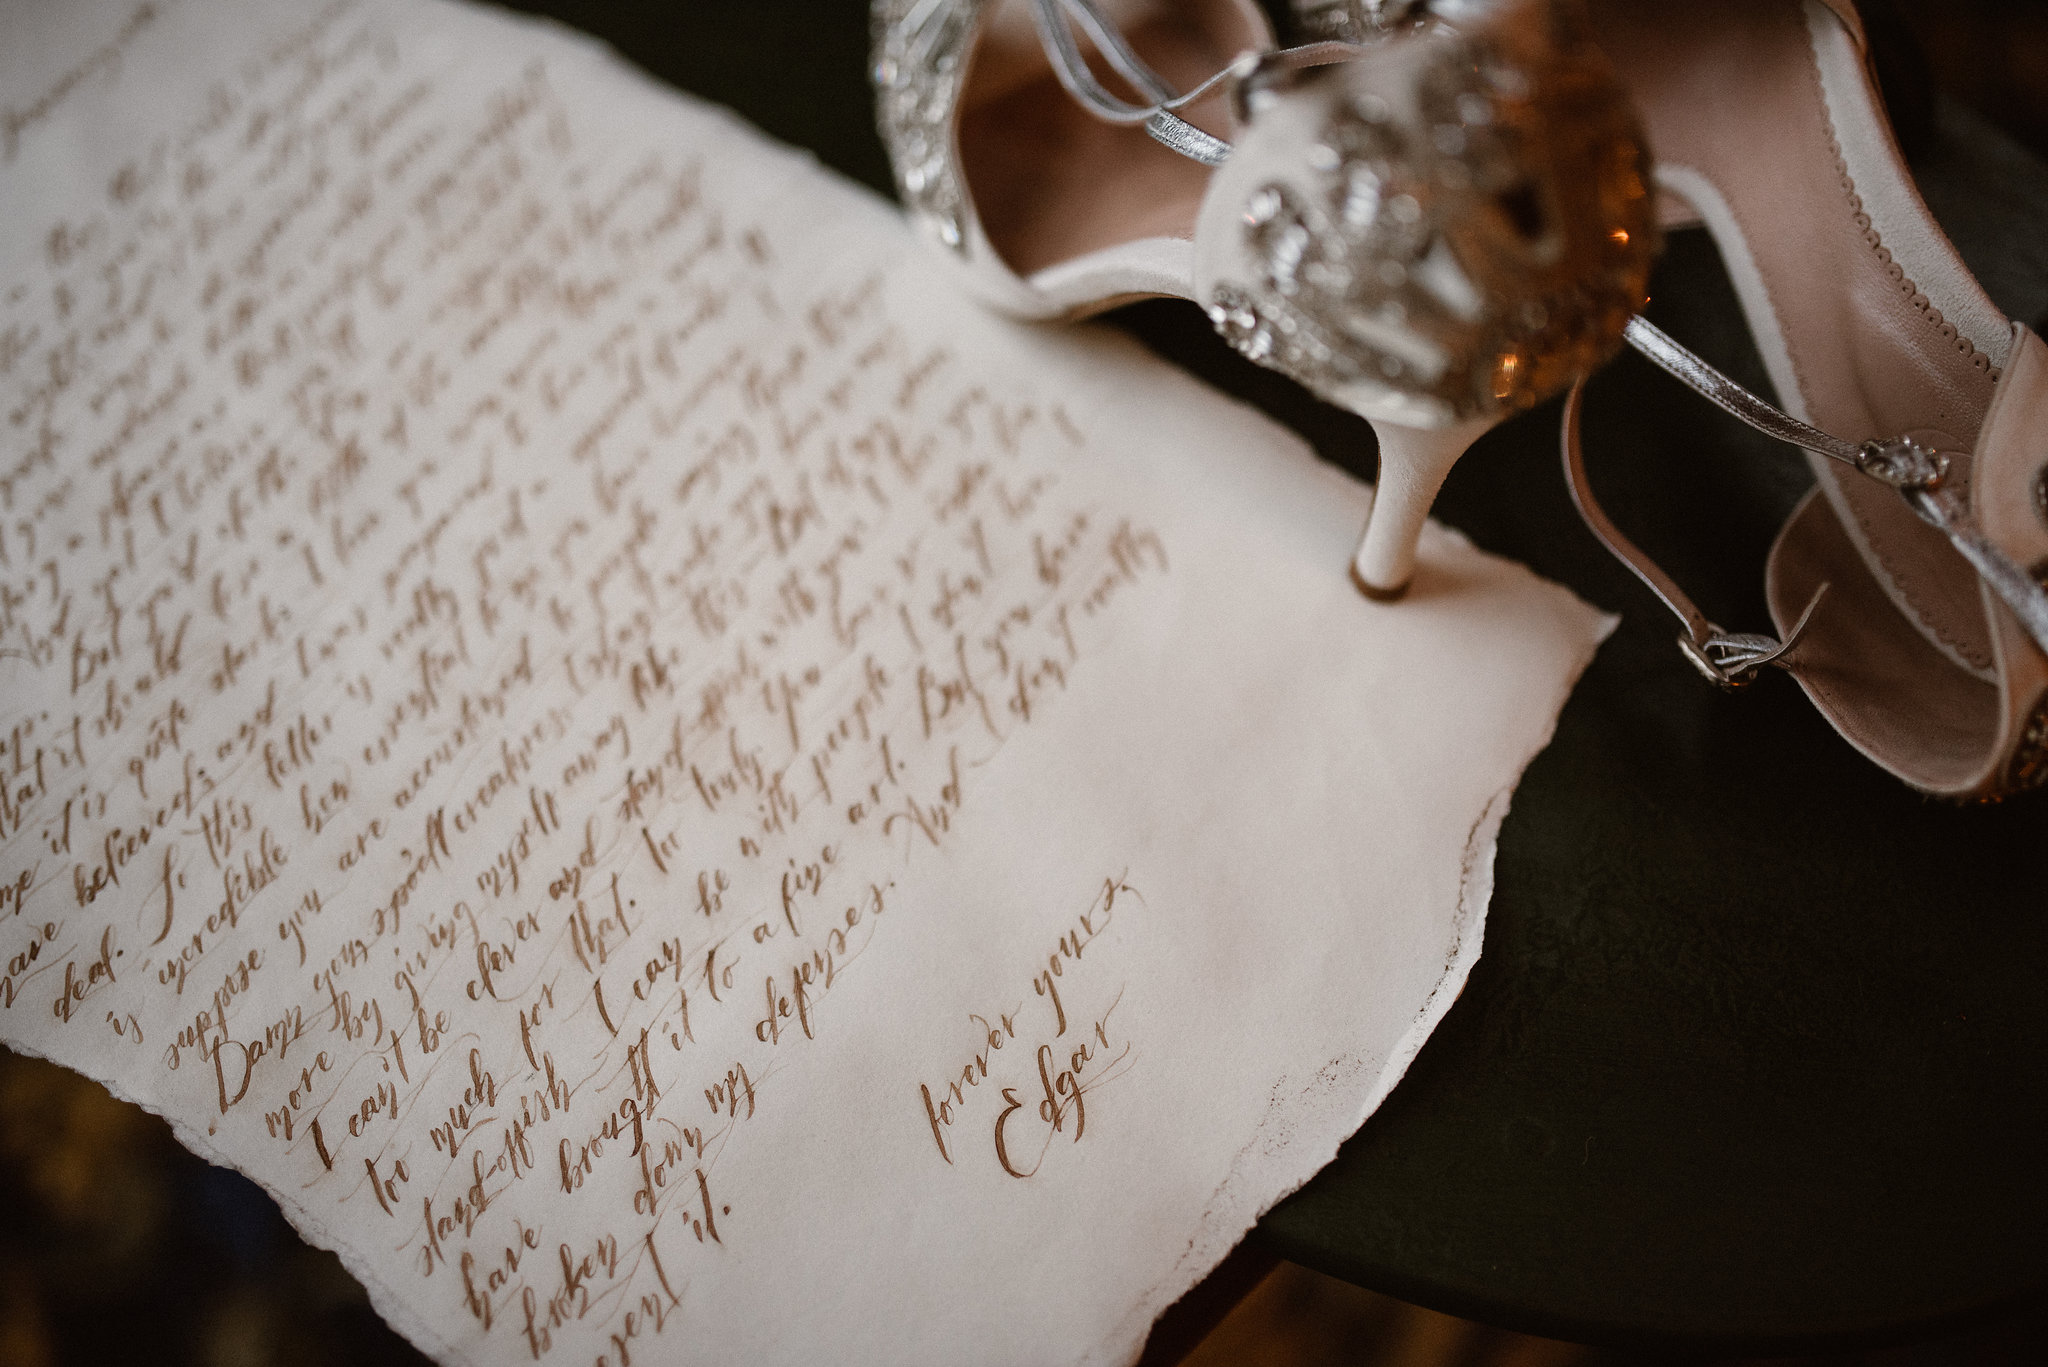 Handwritten Love Letters And Wedding Vows Make Beautiful Artwork